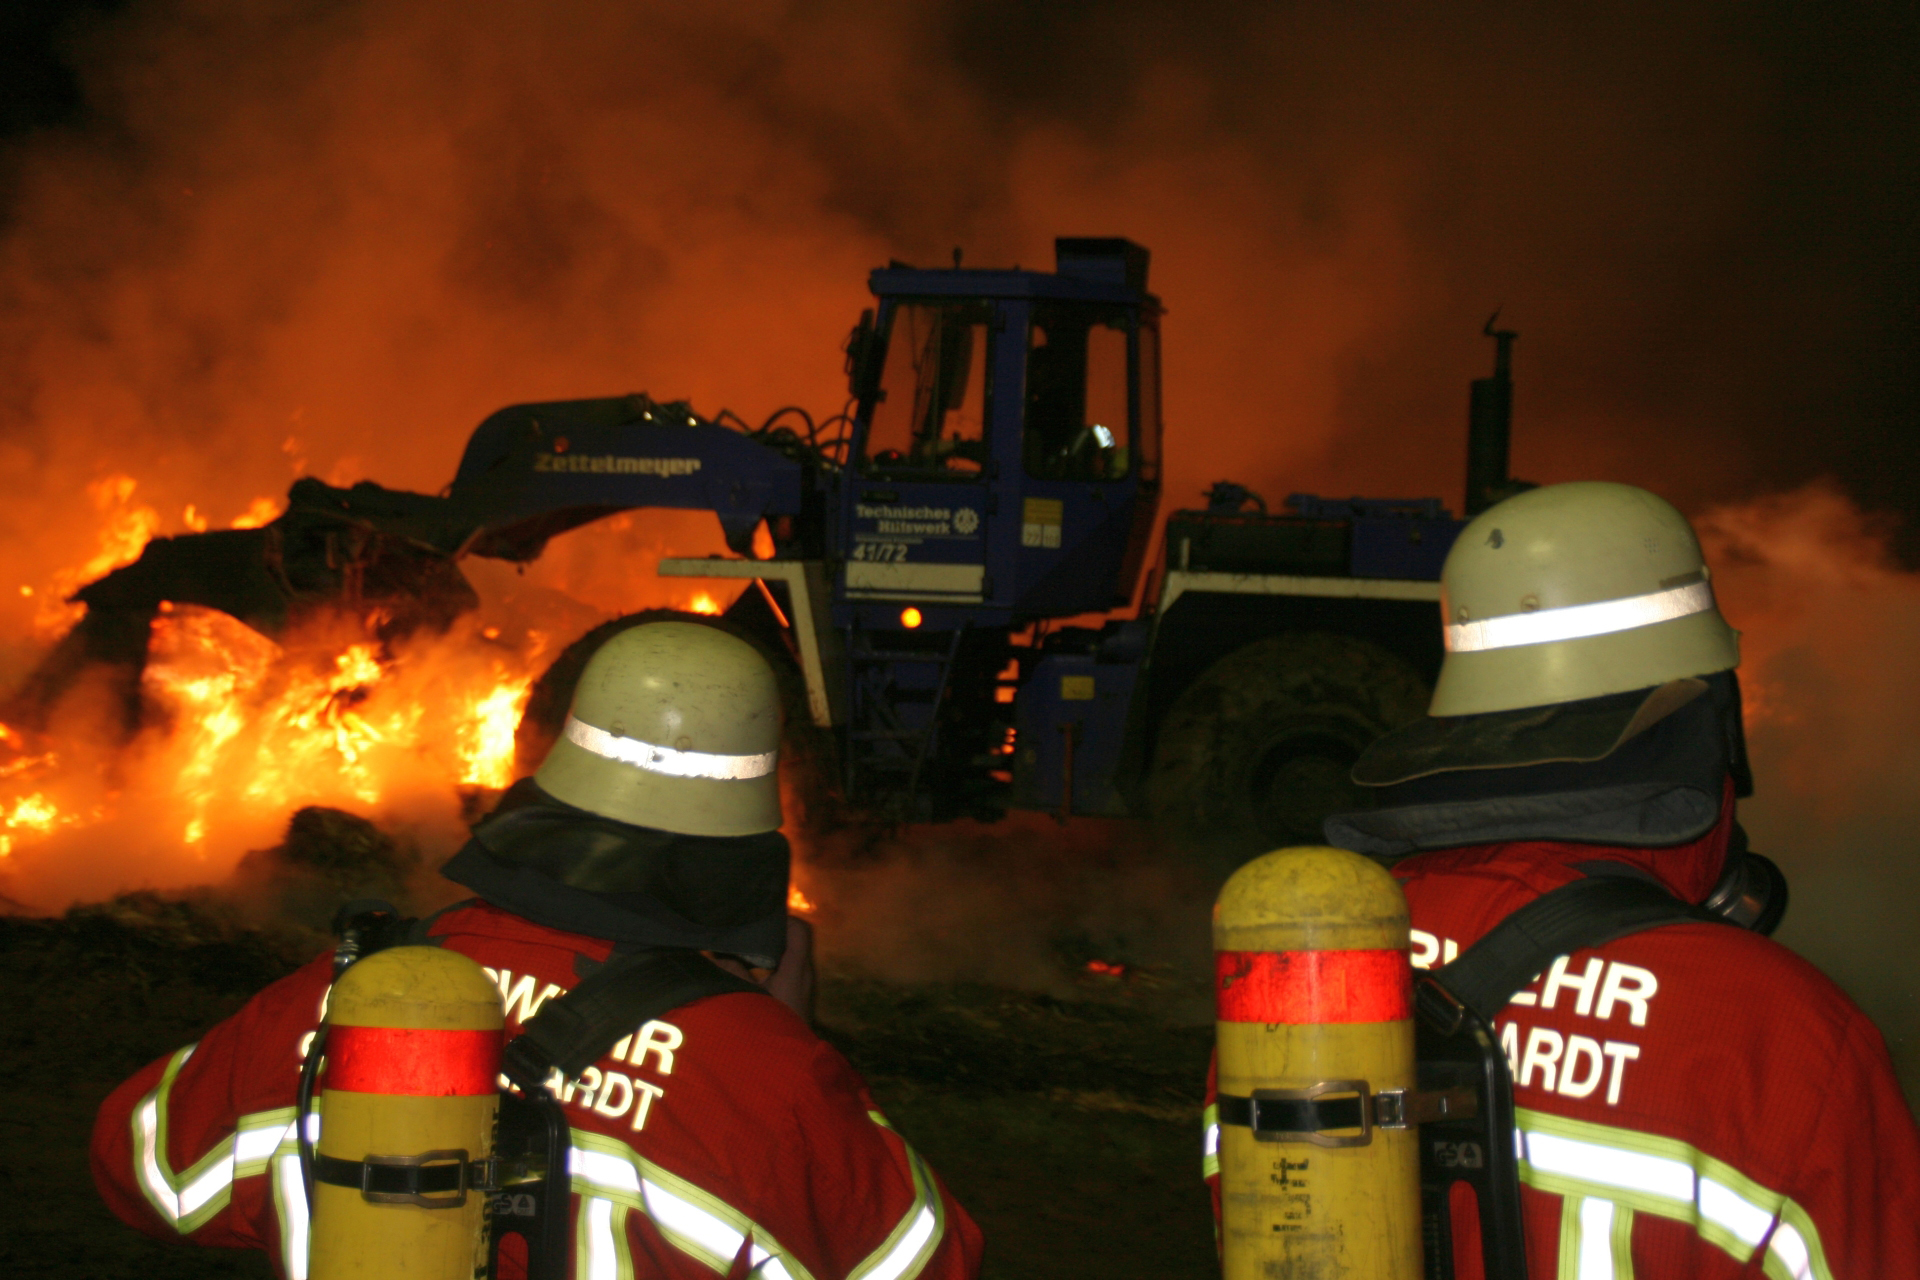 The German Federal Agency for Technical Relief (Technisches Hilfswerk, or THW) is an operational volunteer-based    civil protection organization that operates under the Ministry of the Interior. According to THW, the use of modern equipment and well-trained specialists in a number of sectors — from supporting the fire brigade (pictured, working on a high-intensity fire) and flood relief to urban search and rescue — account for the agency's high efficiency. (THW)